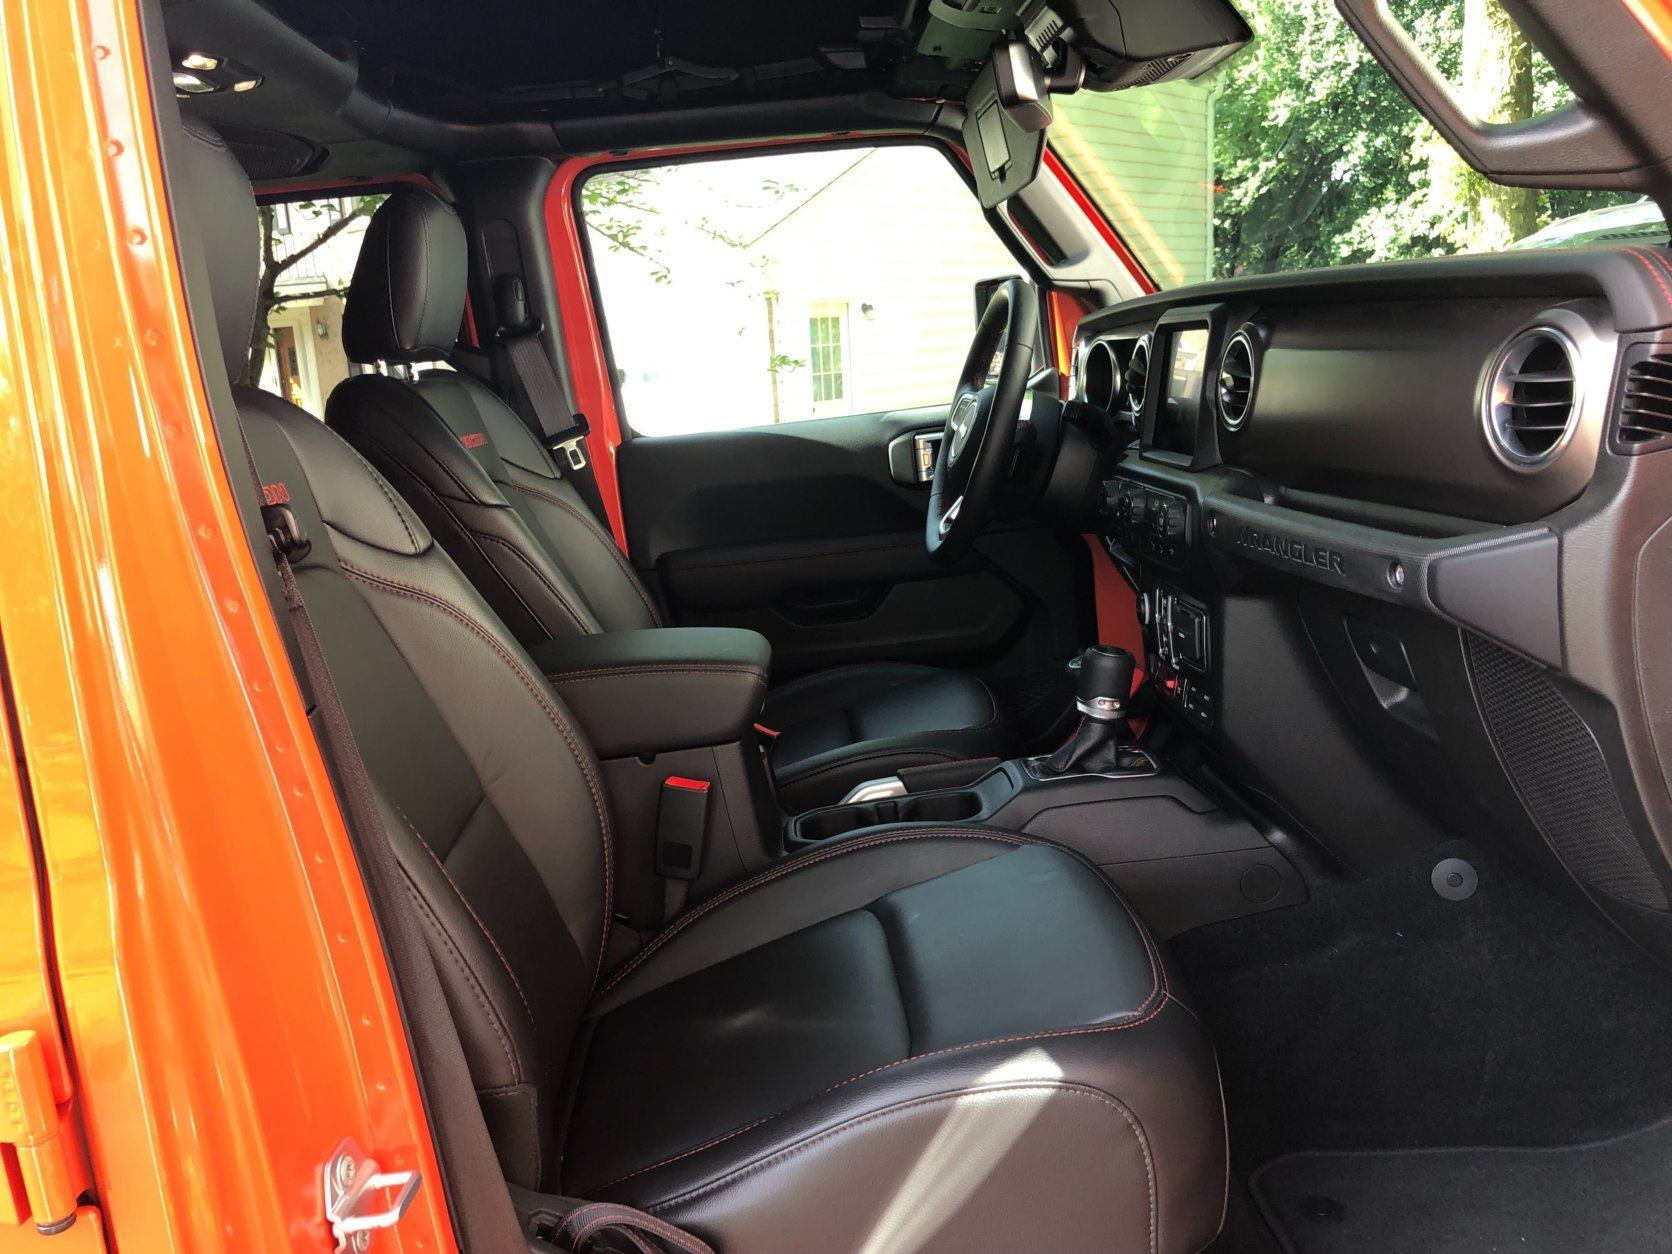 Leather seats and nicer interior materials. A big step up for the Wrangler.